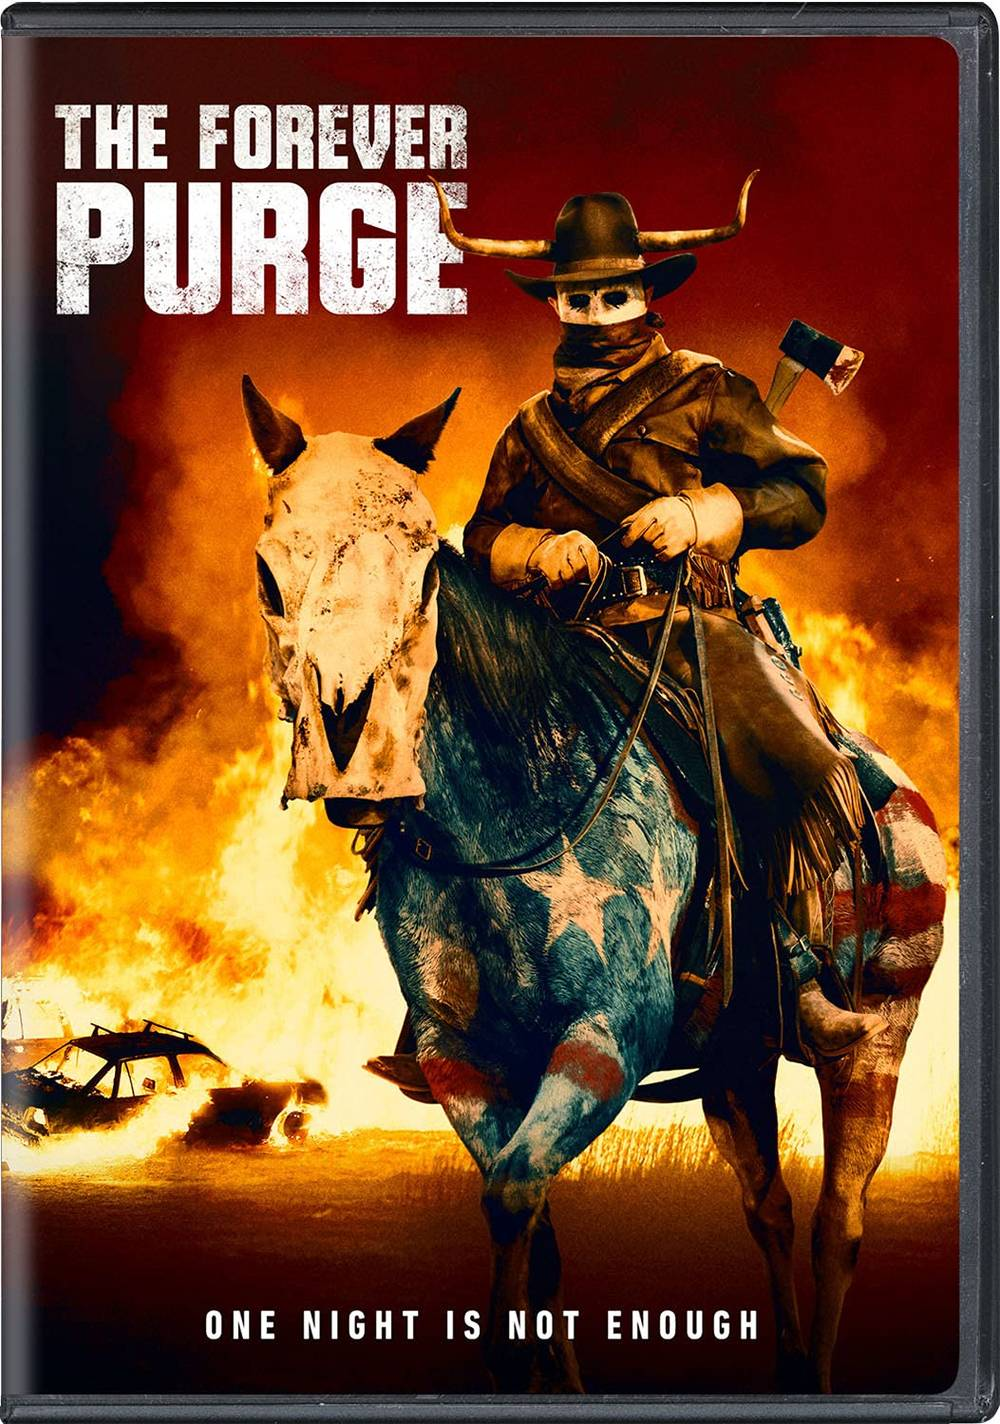 The Purge [Movie] - The Forever Purge